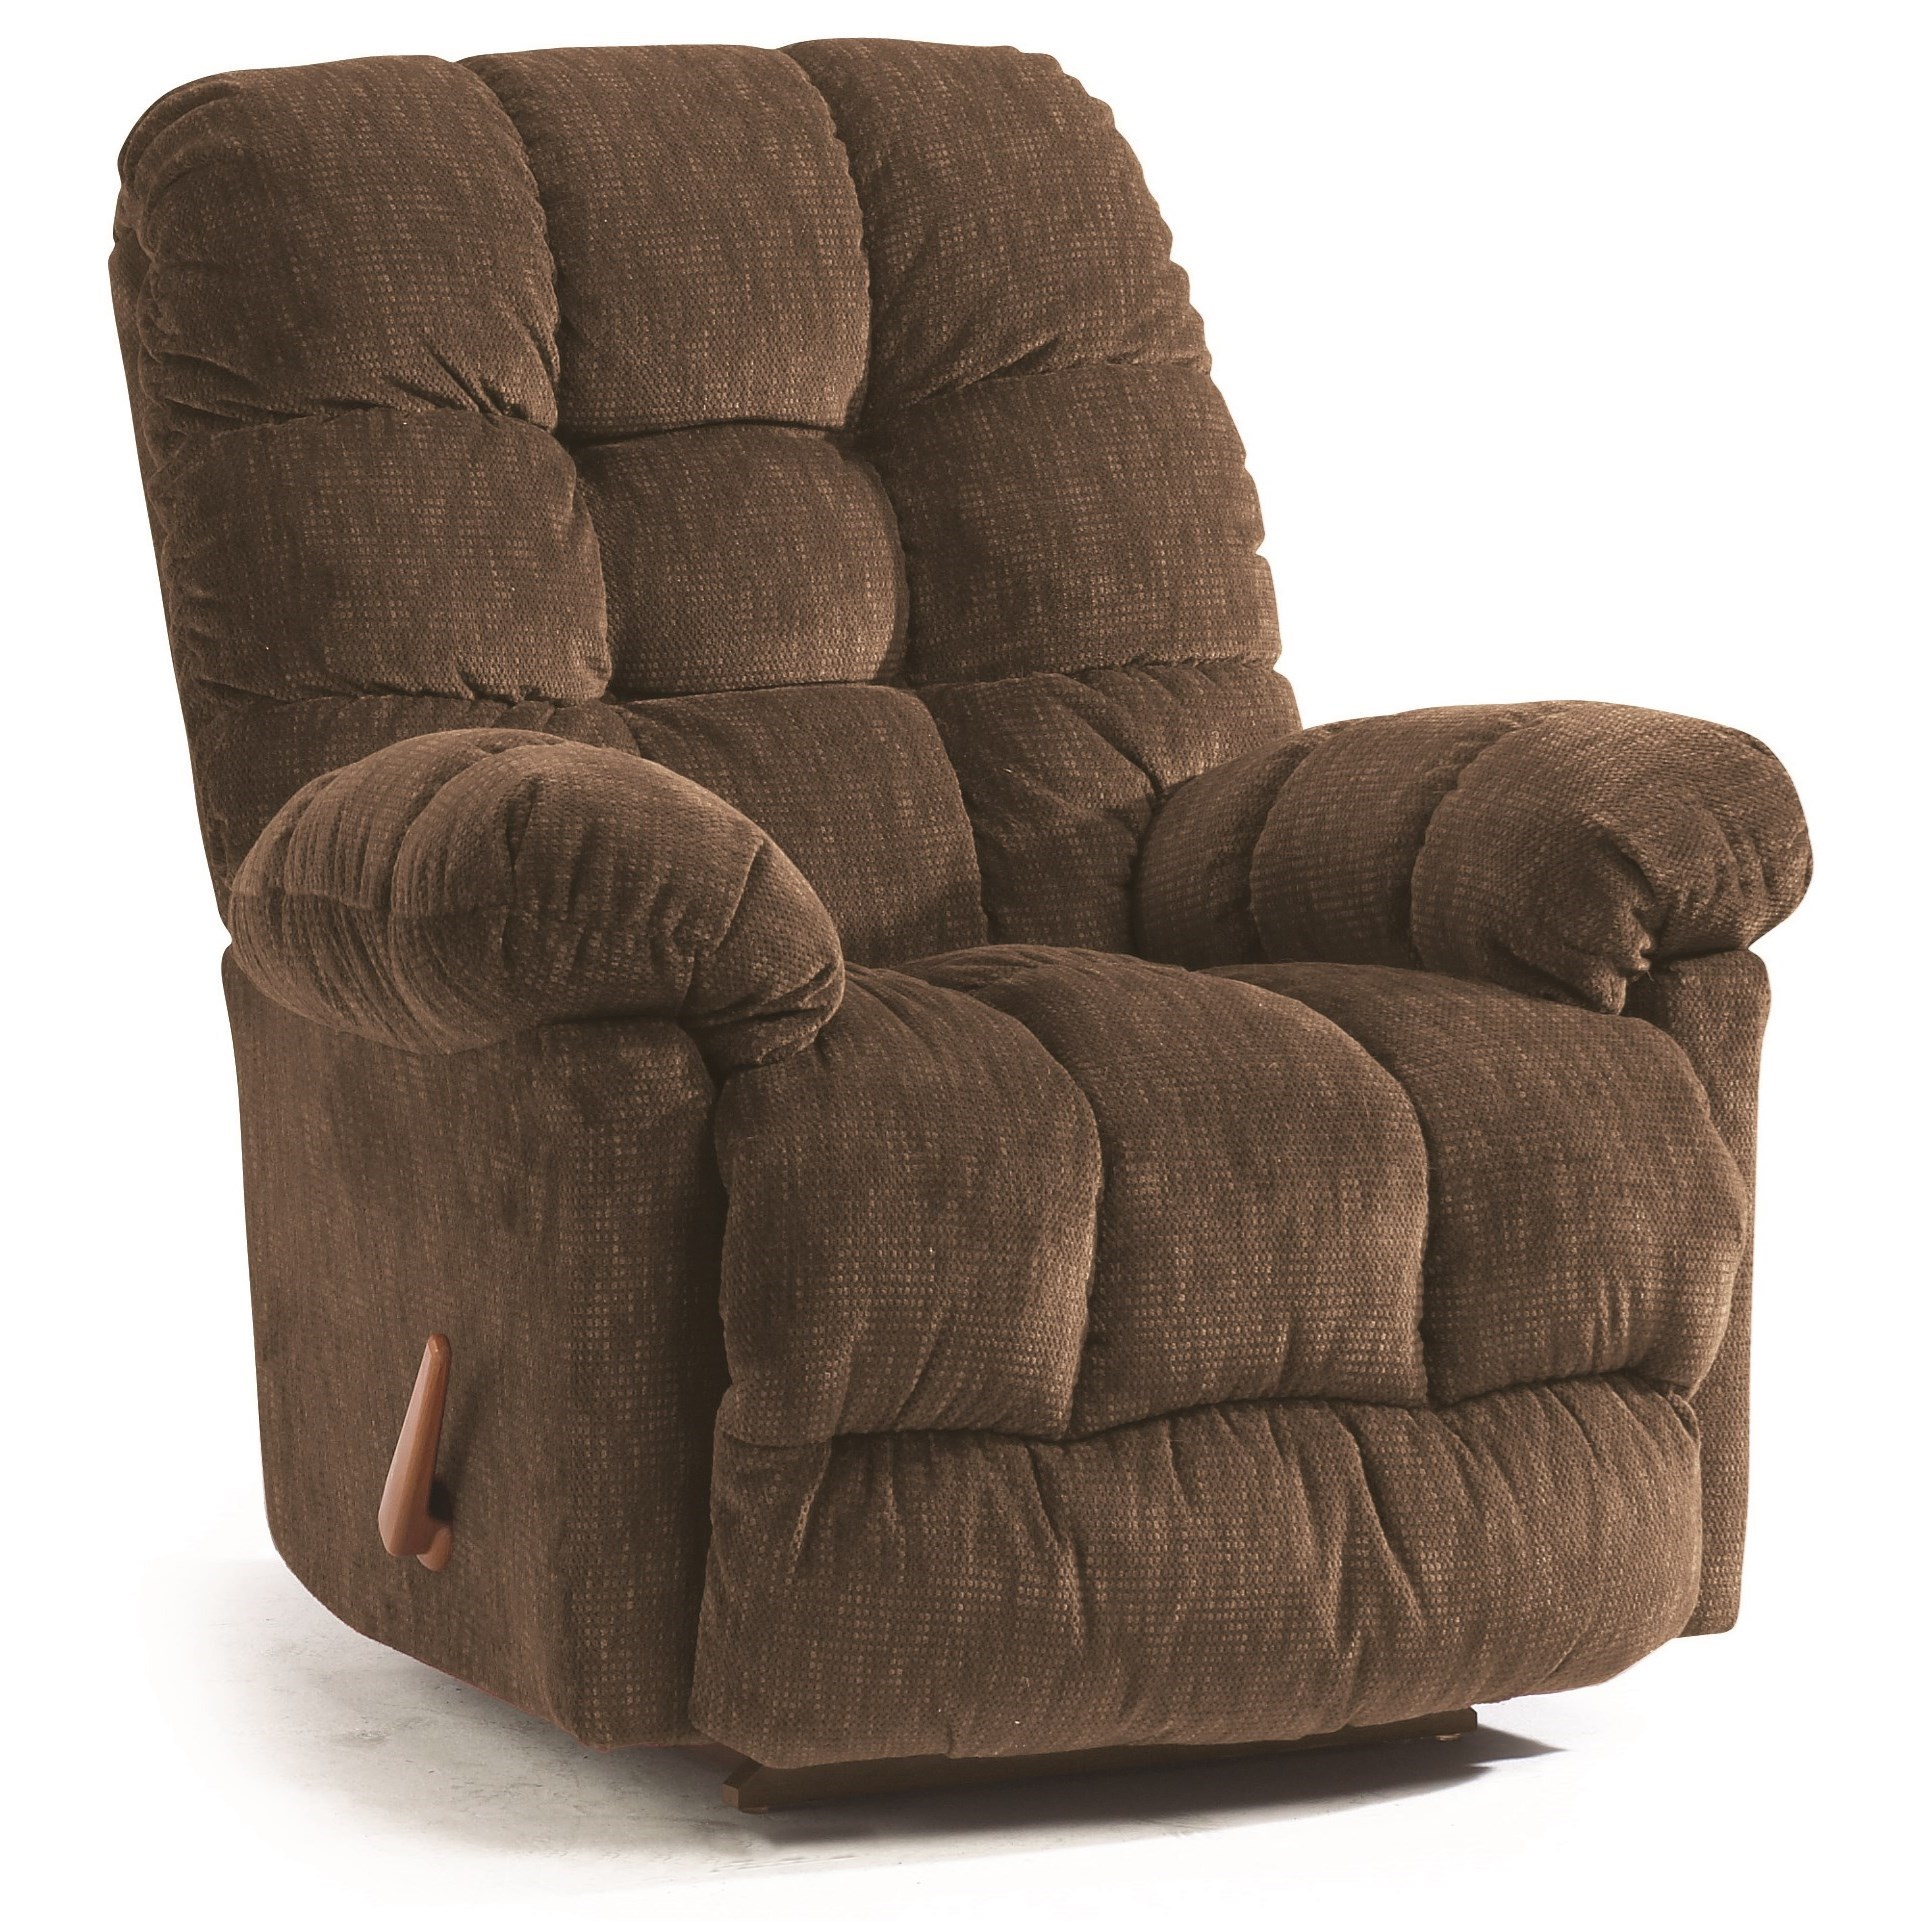 Cocoa Rocker Recliner Chair